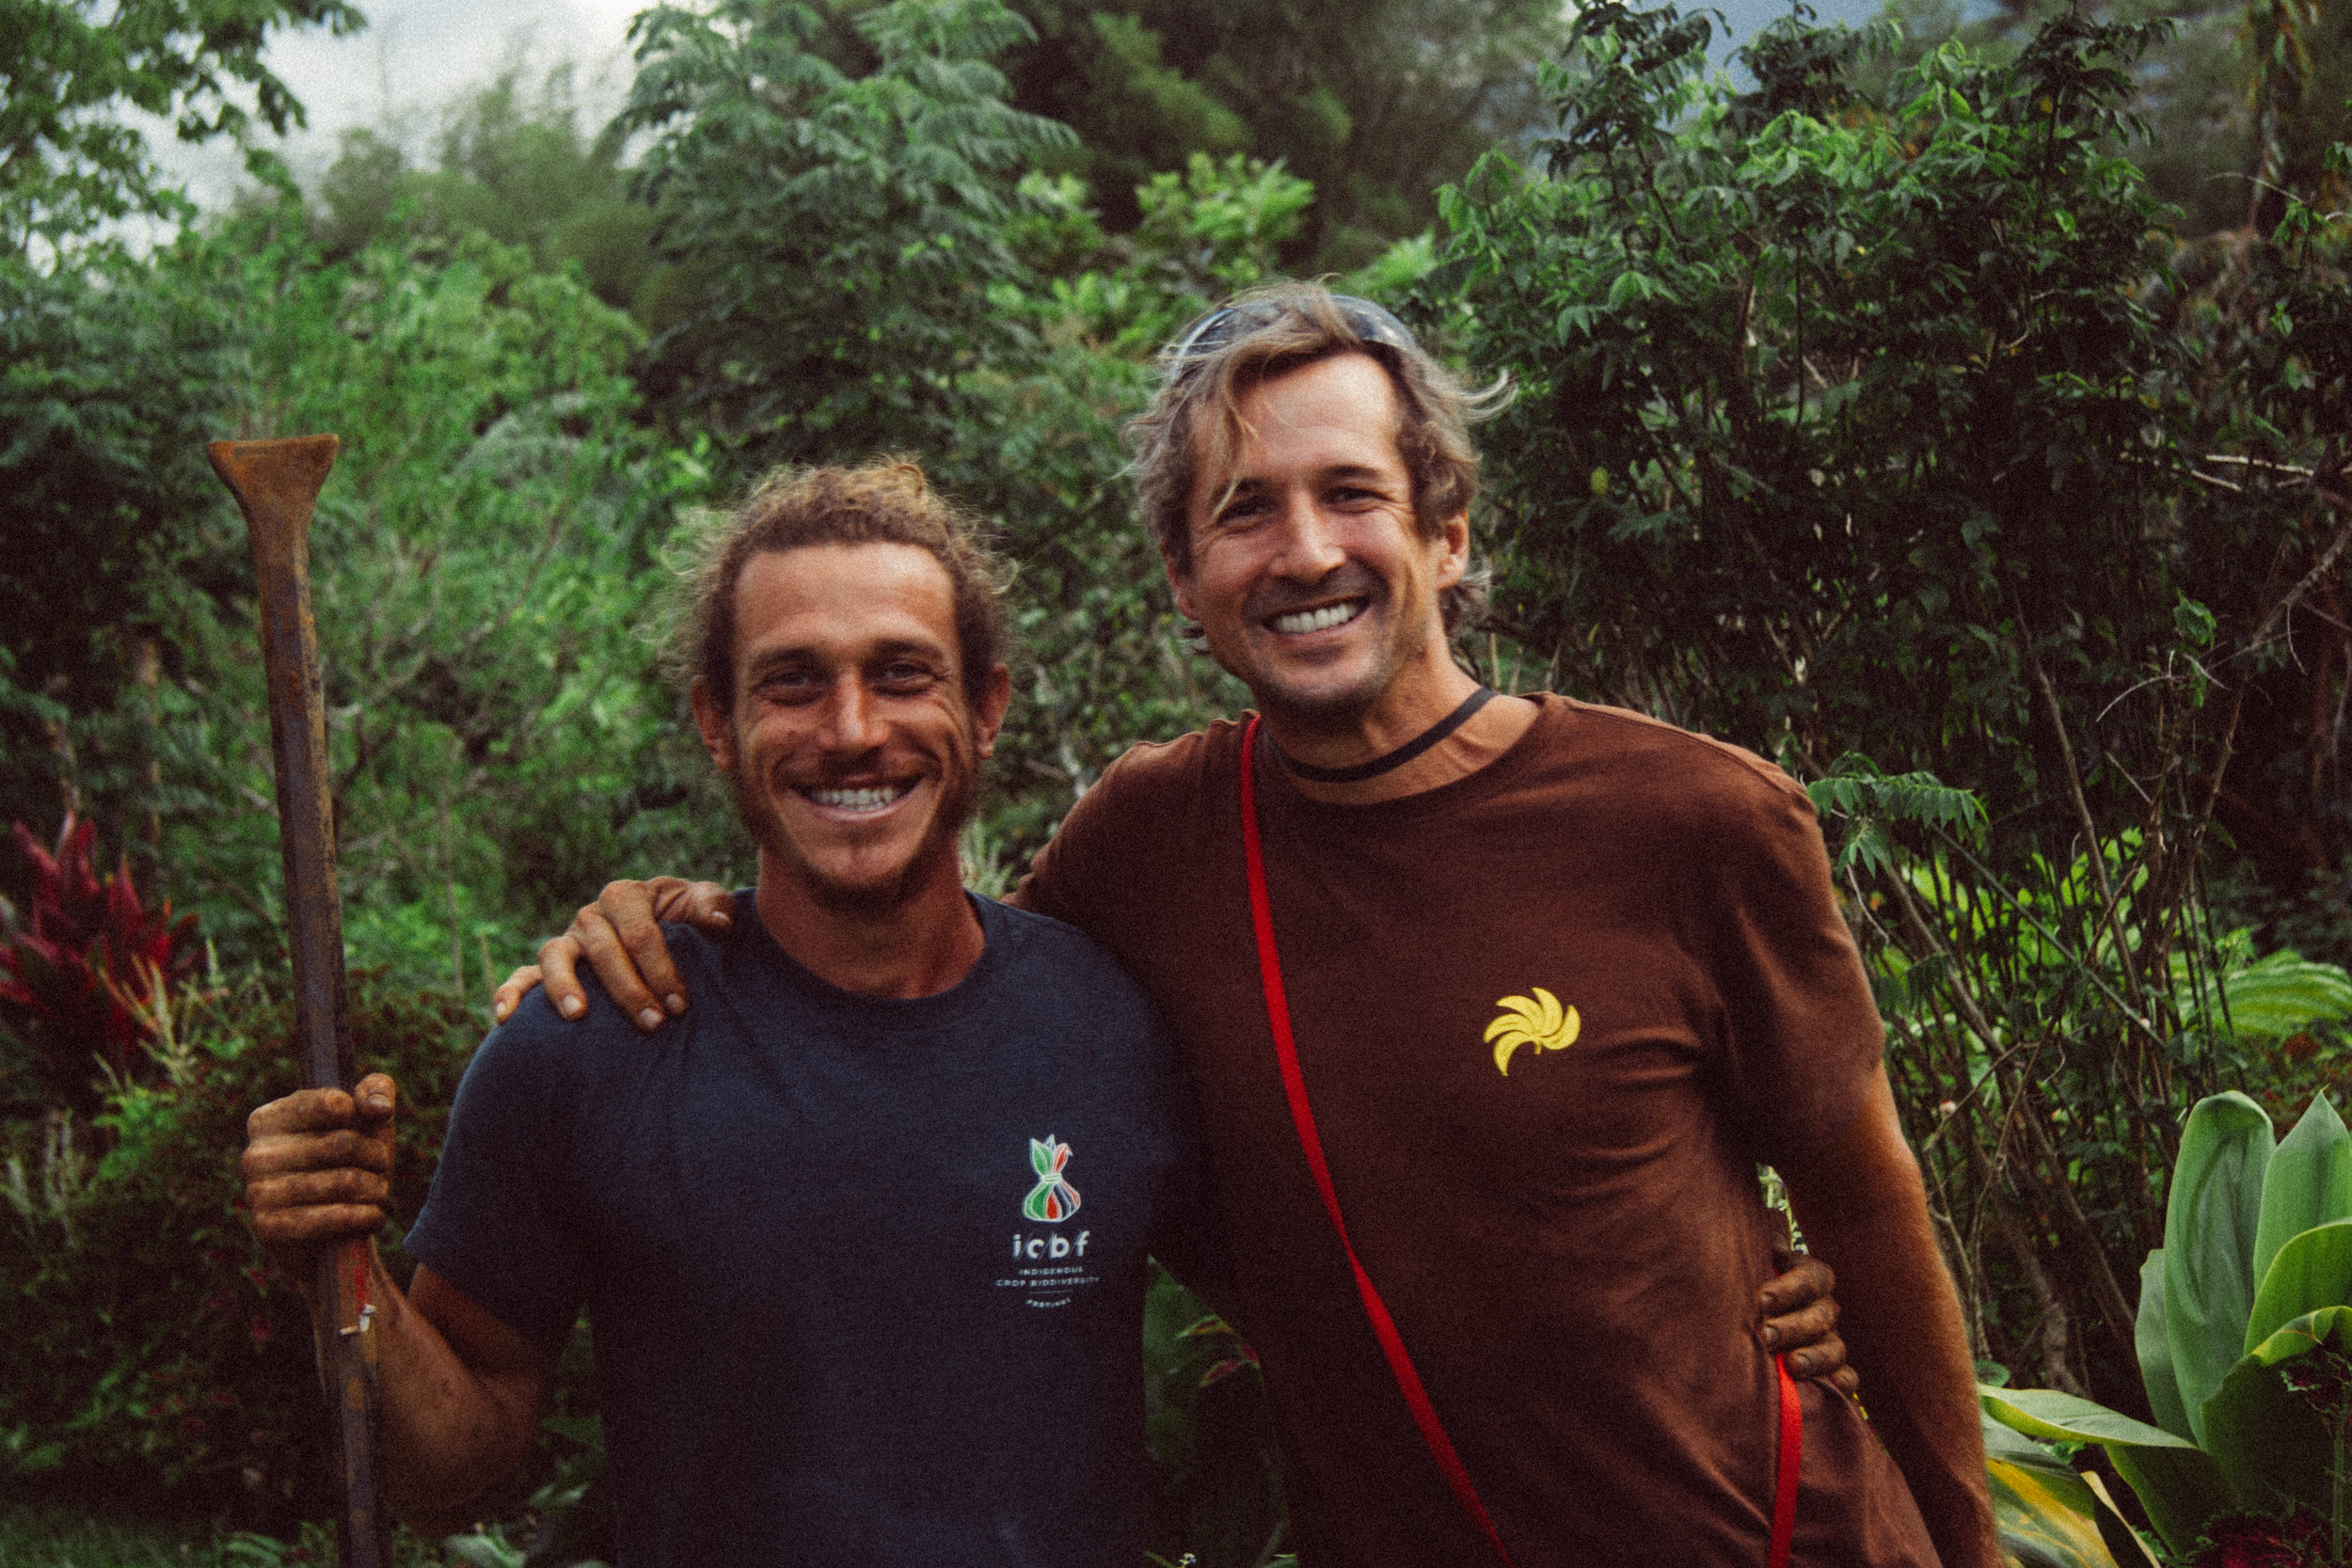 Rob Cruz and Paul Massey at the Kaua'i Food Forest. May 2019.